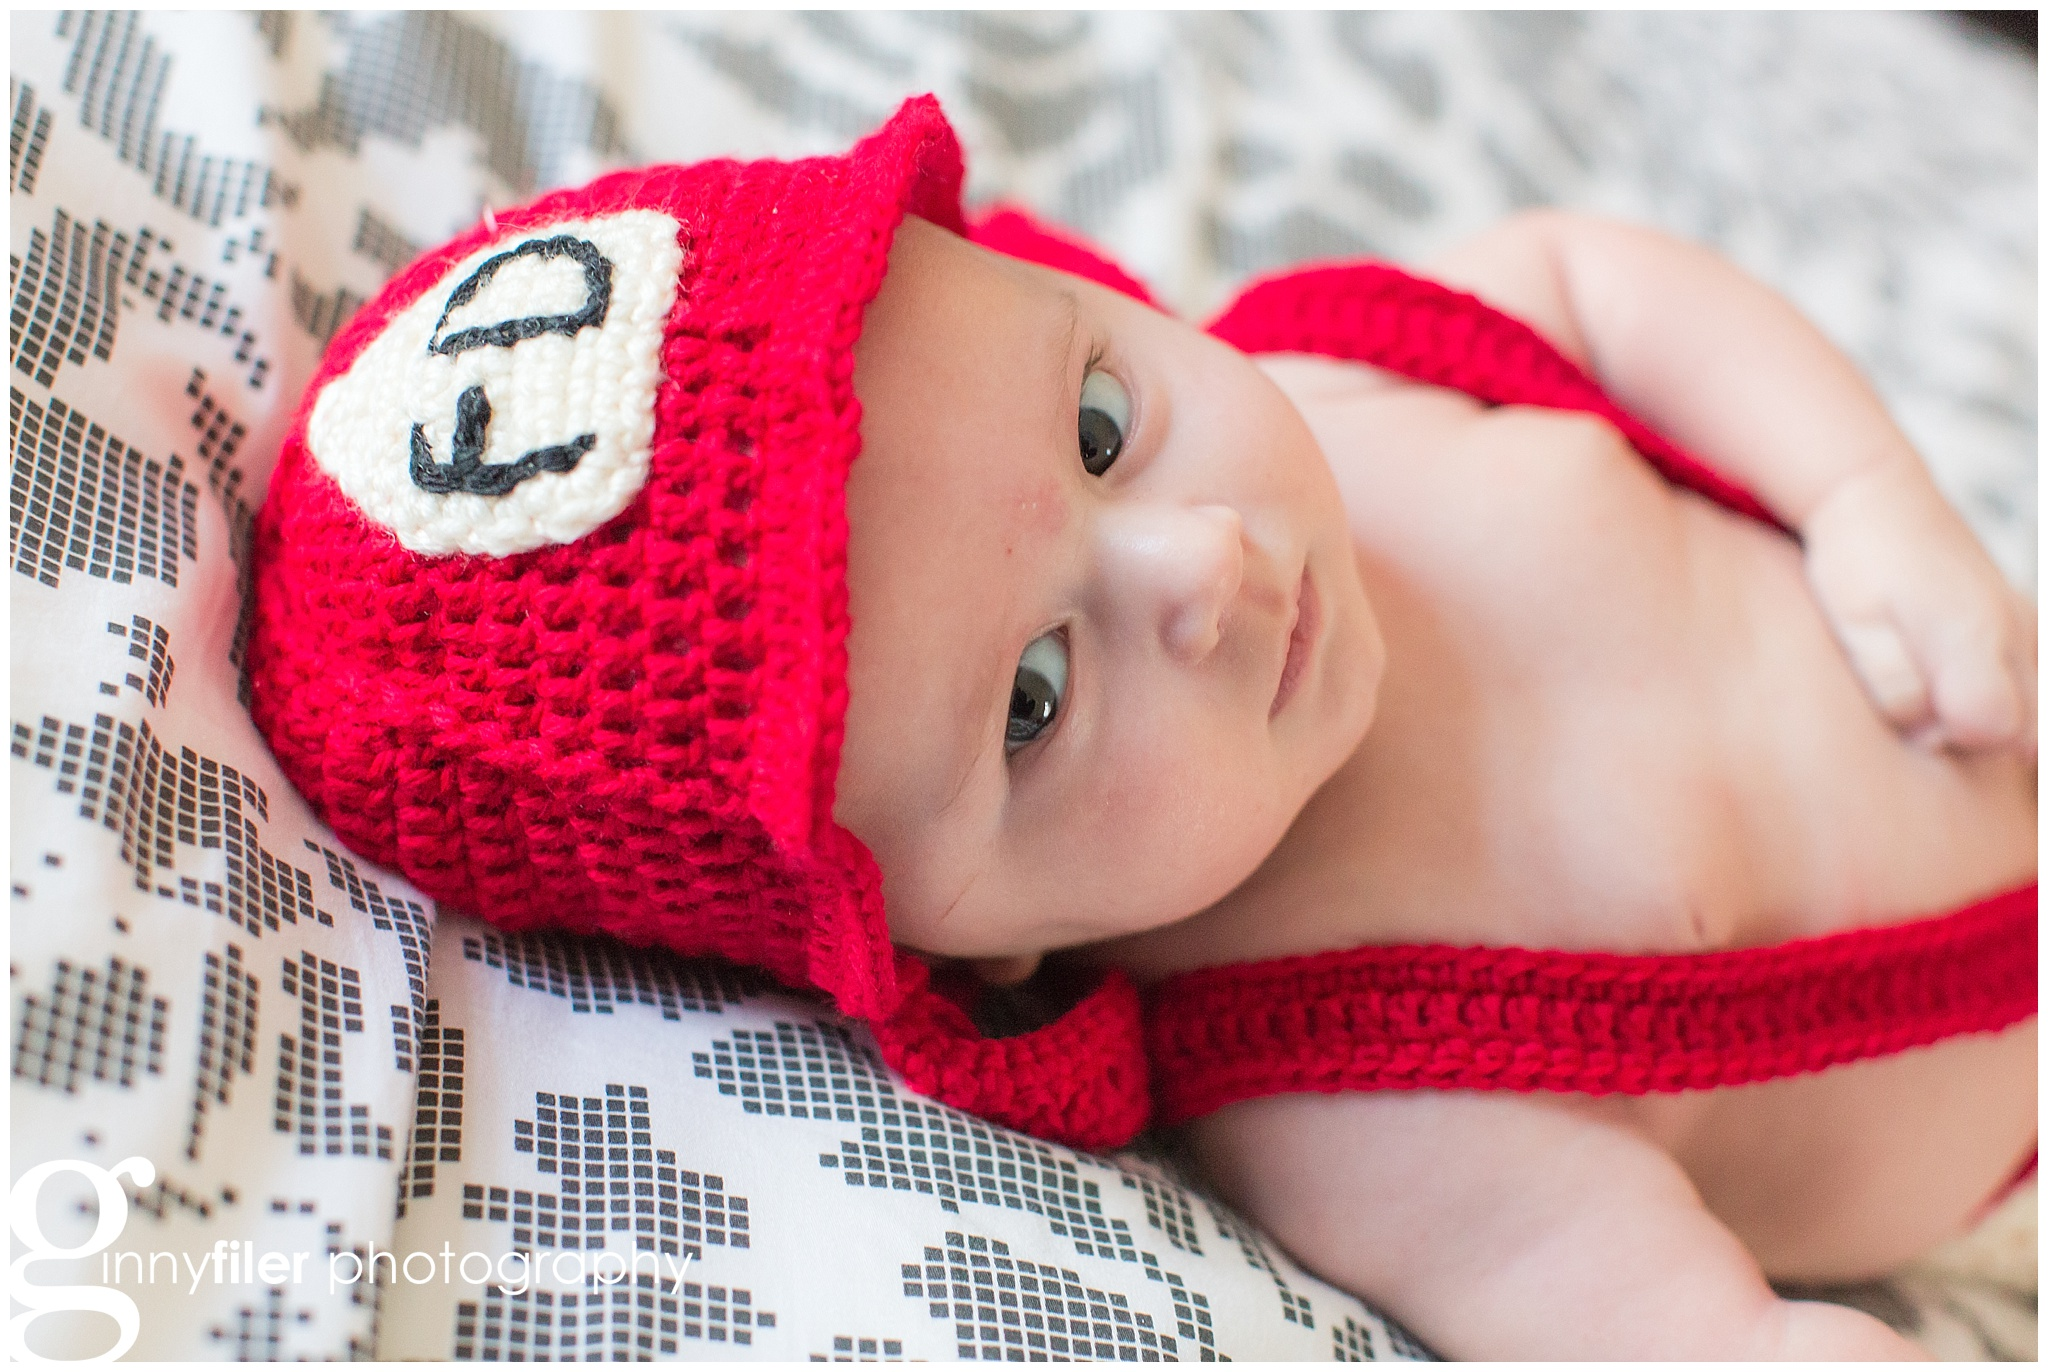 newborn_photography_whalen_0013.jpg